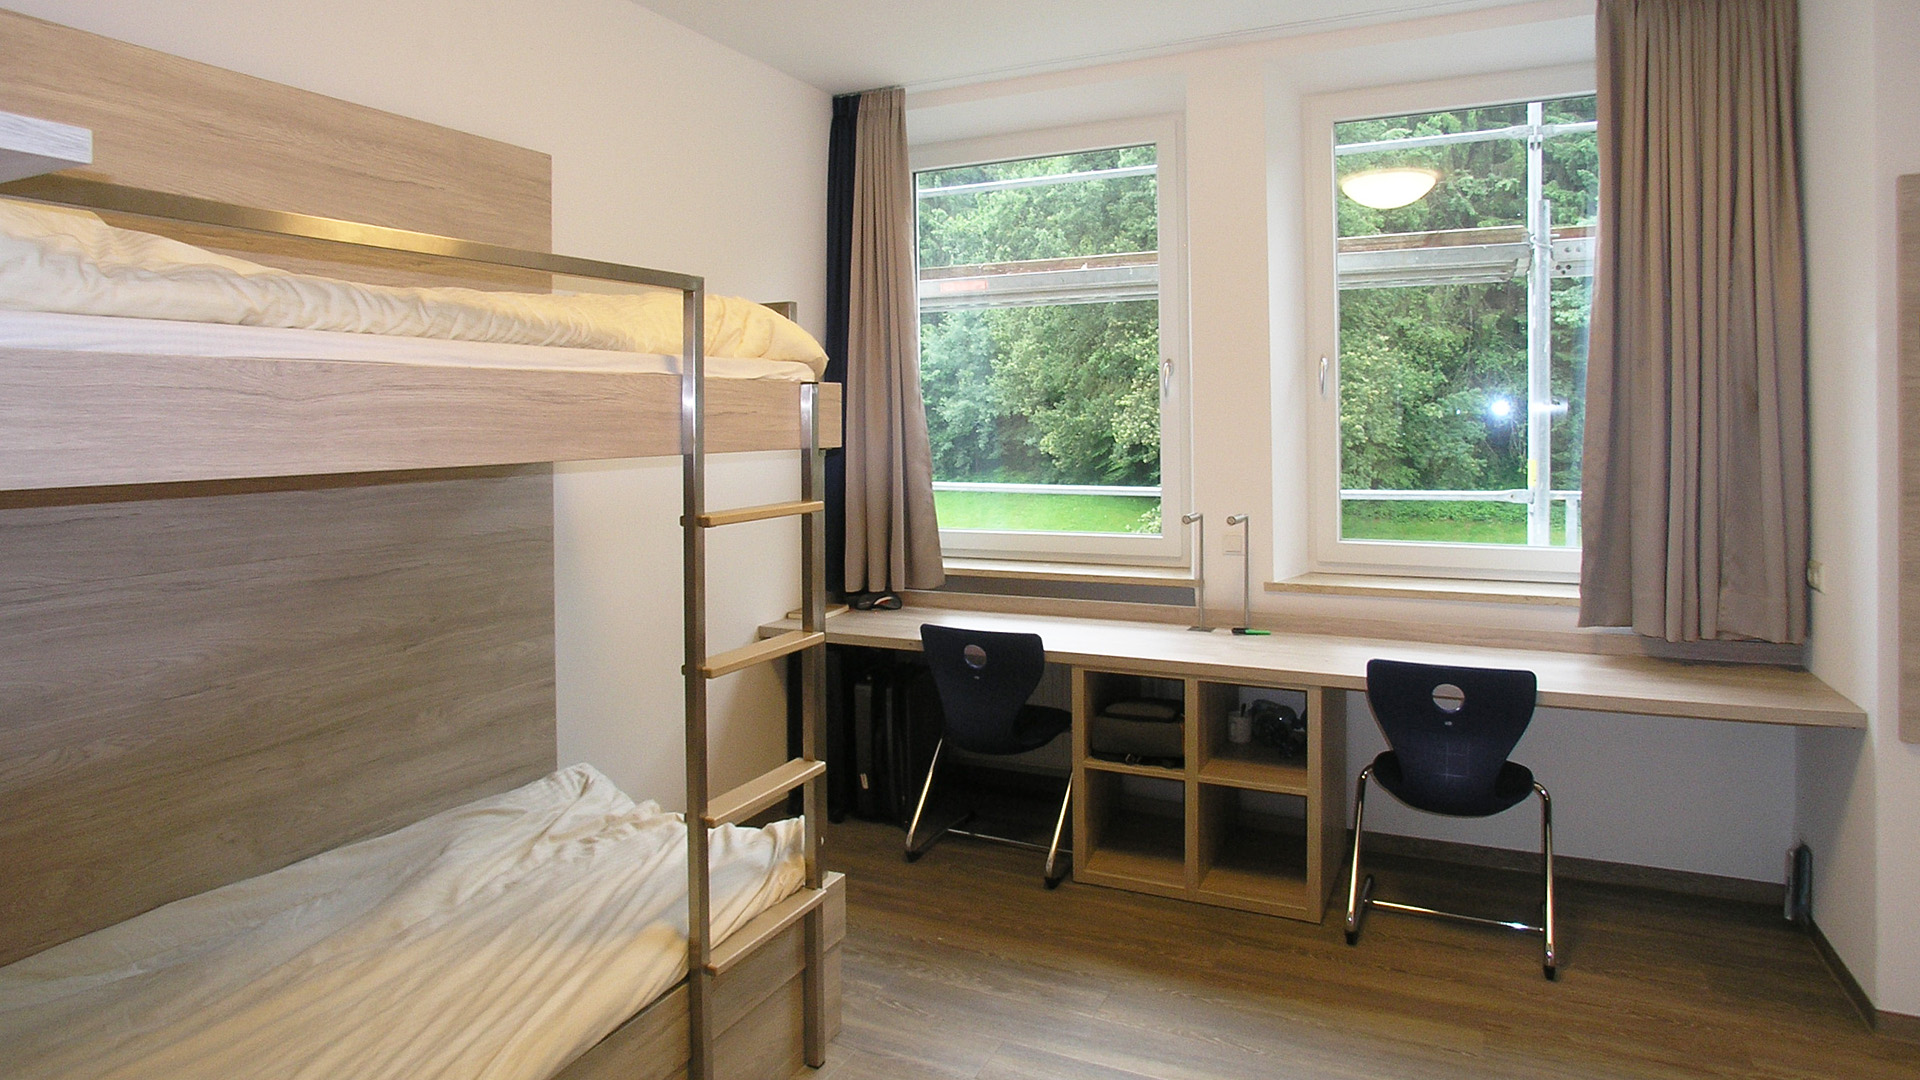 Accommodation: Example of a twin room in Lindenberg